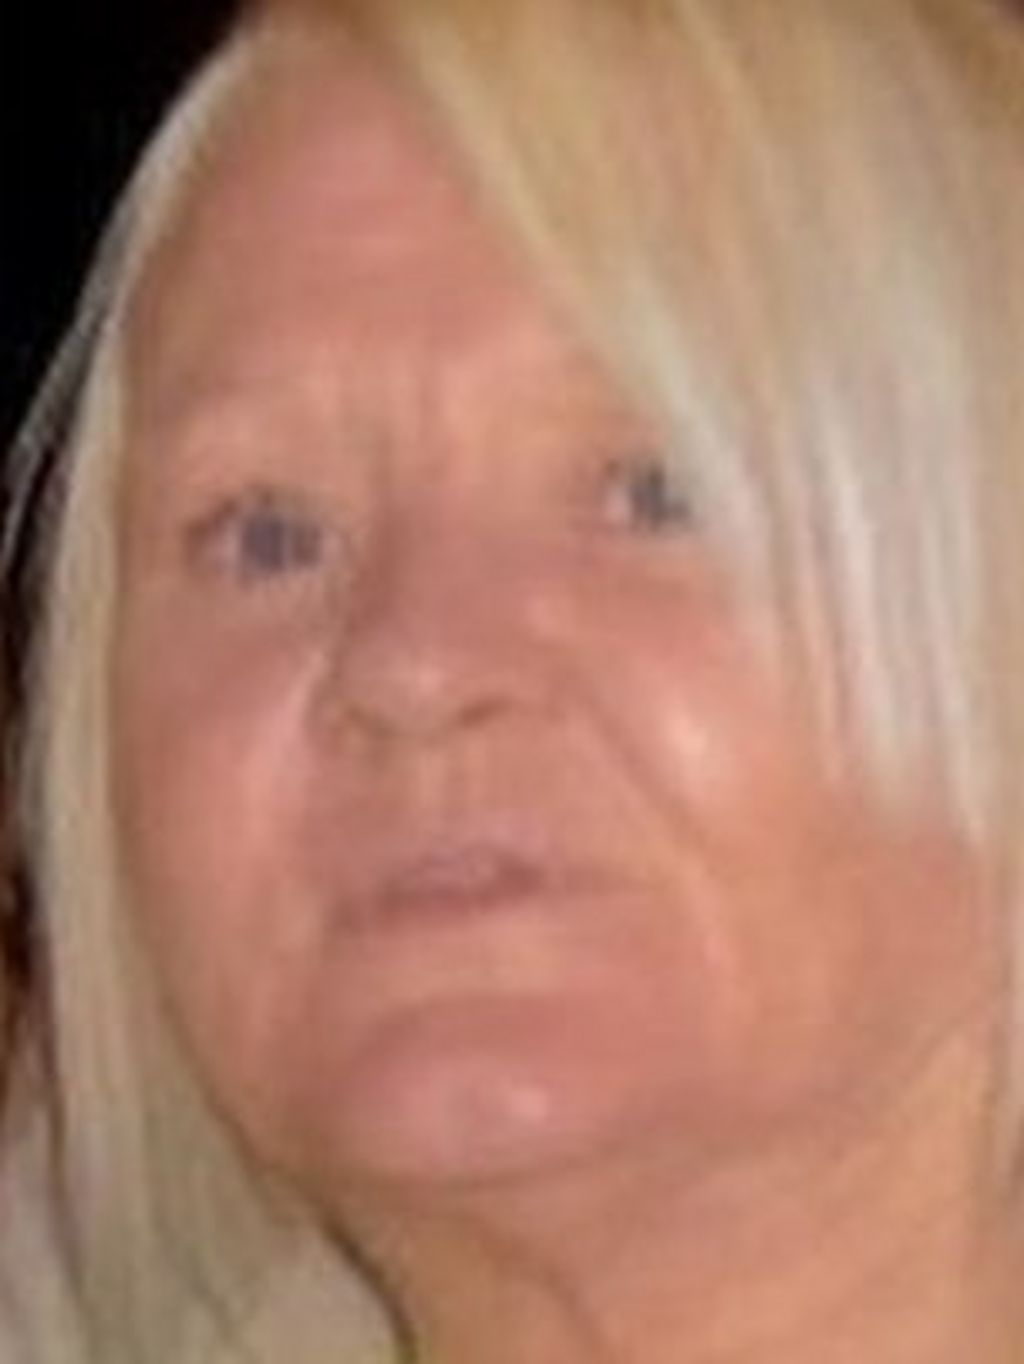 John Henderson jailed over Audrey Gray hit-and-run death